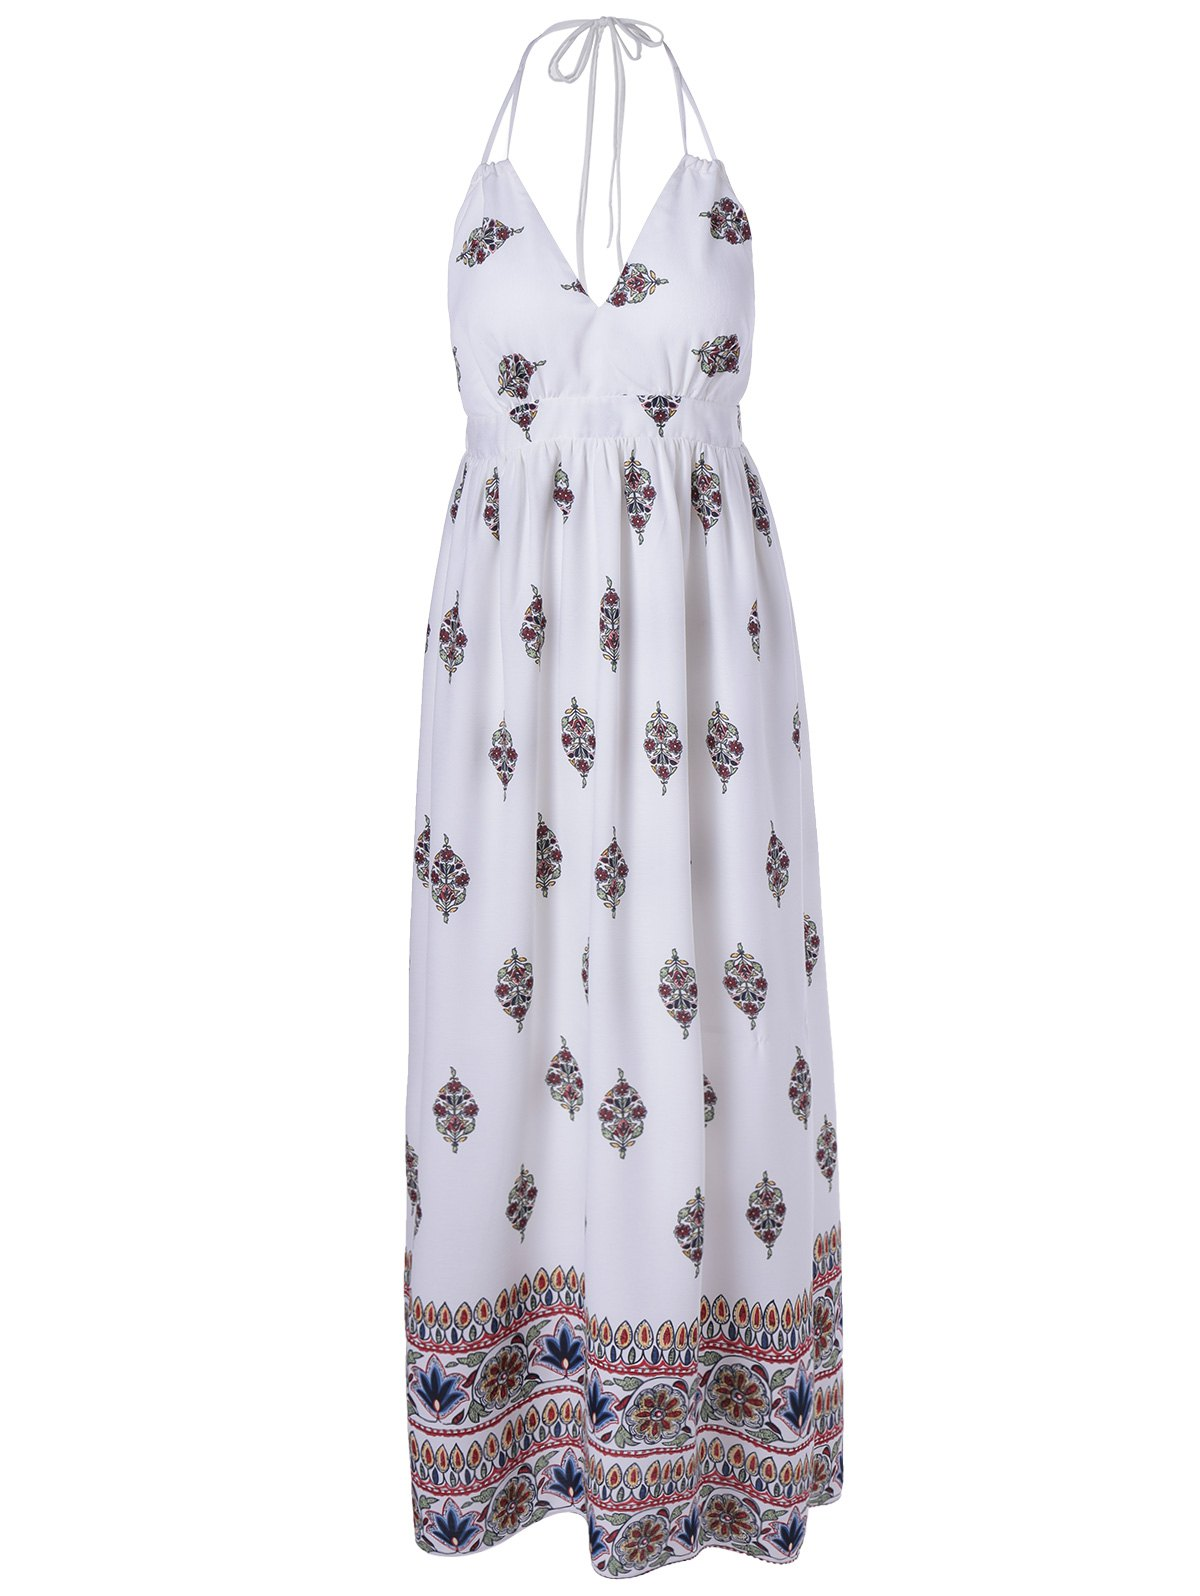 Elegant Women's Halter Backless Printing Dress - WHITE S